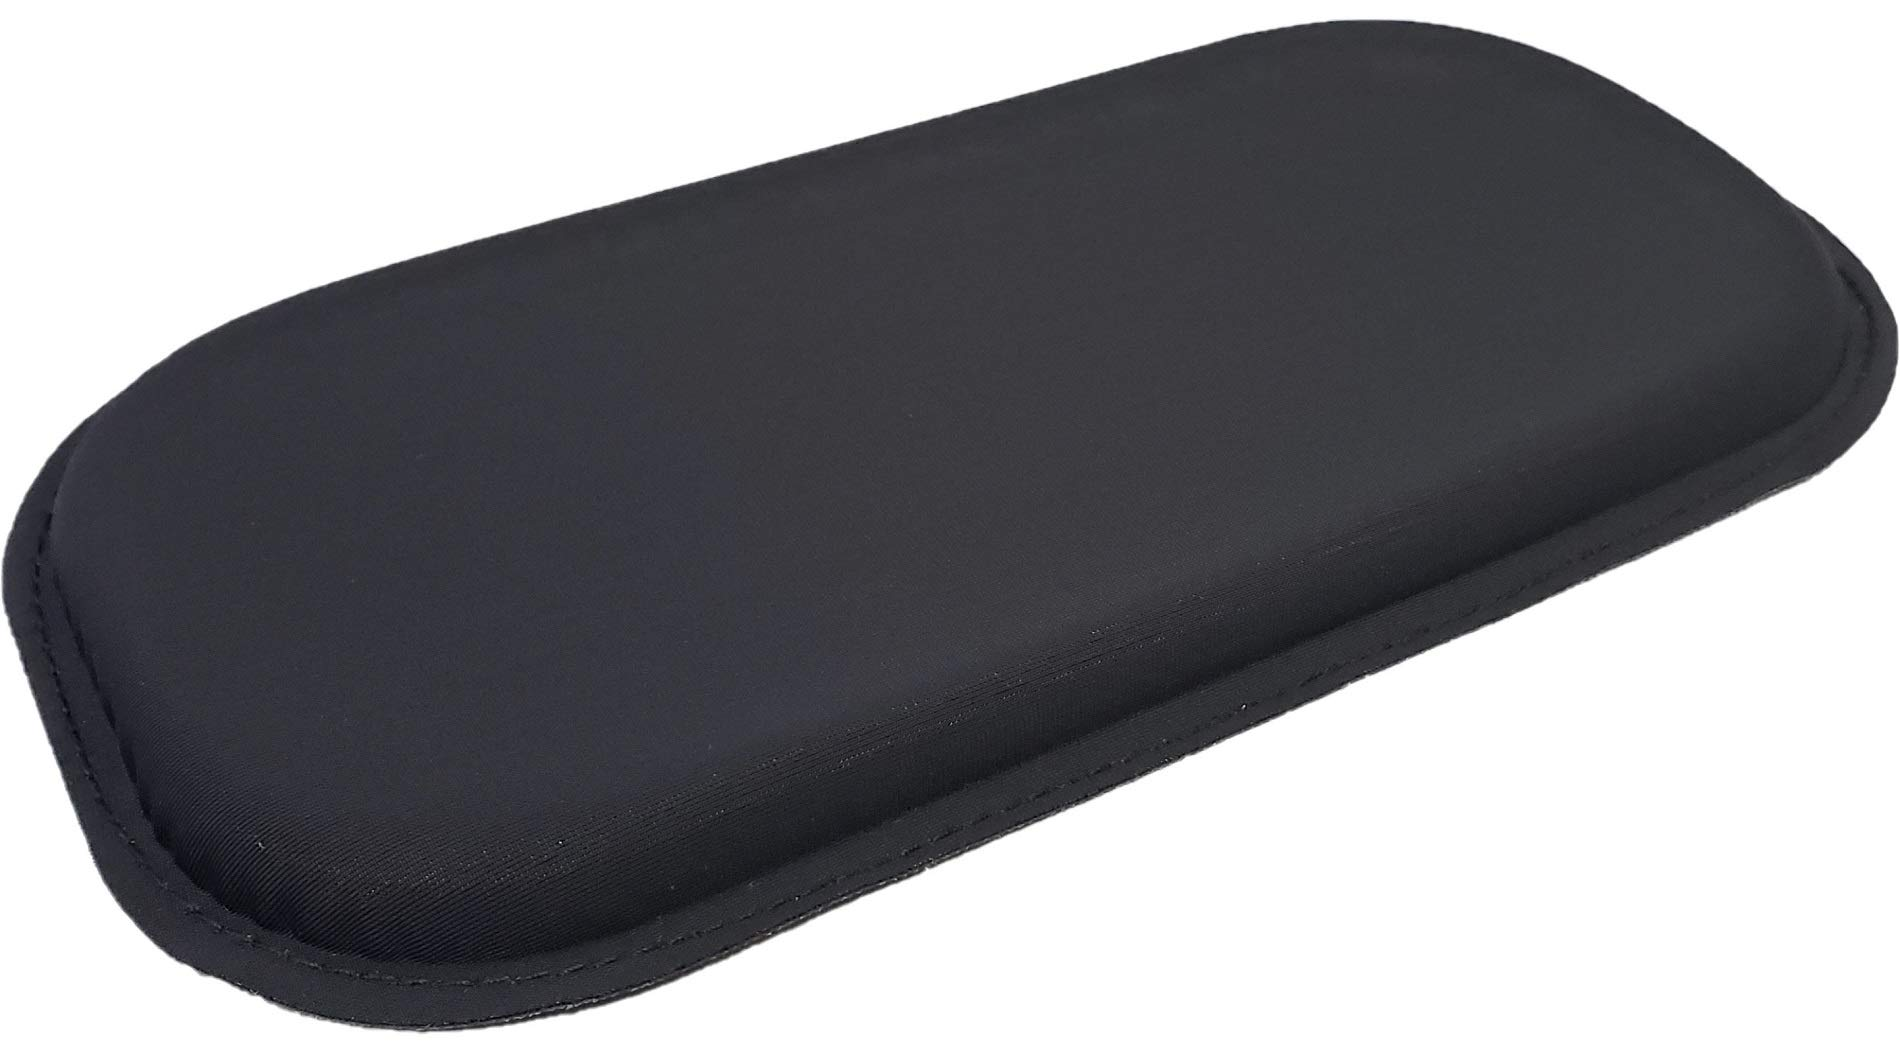 ULTRAGEL Anywhere, Anytime Arm/Wrist Rest Personal Comfort Gel Pad (4.5x8.5, Black/Non-Slip) by ULTRAGEL